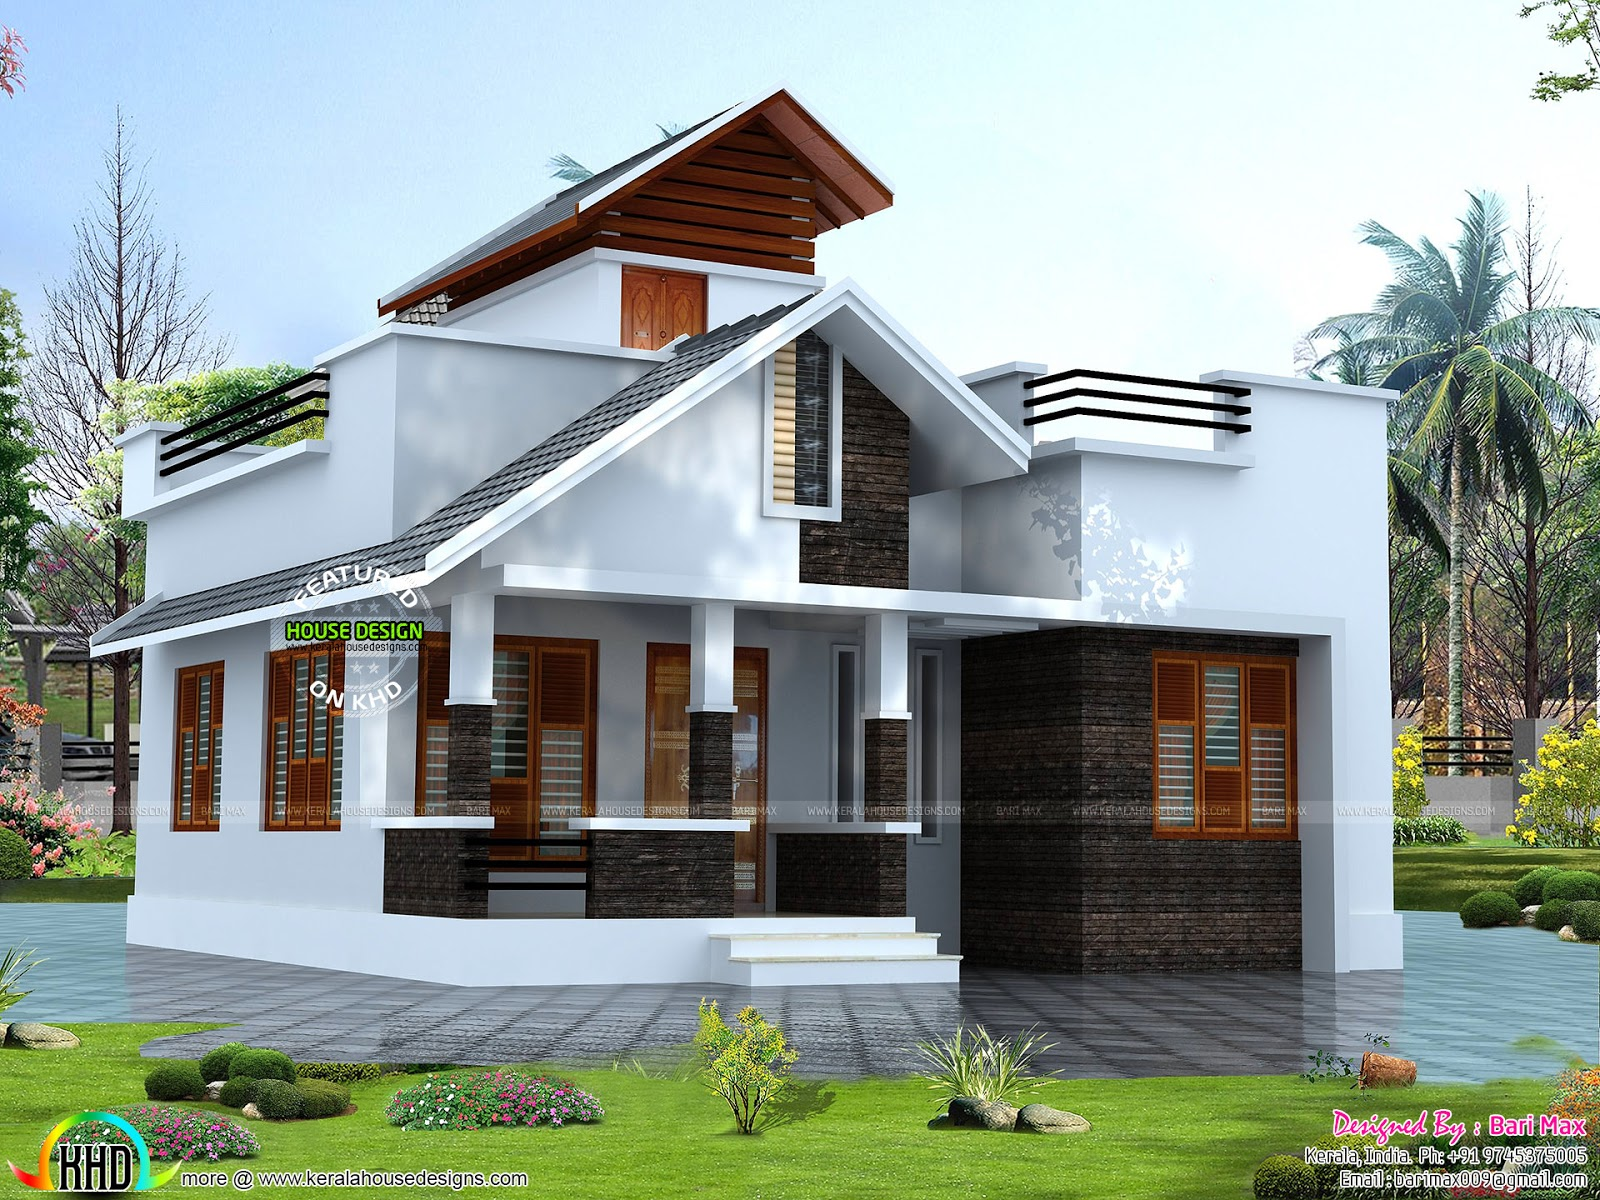 Rs 12 lakh house architecture kerala home design and Best small house designs in india